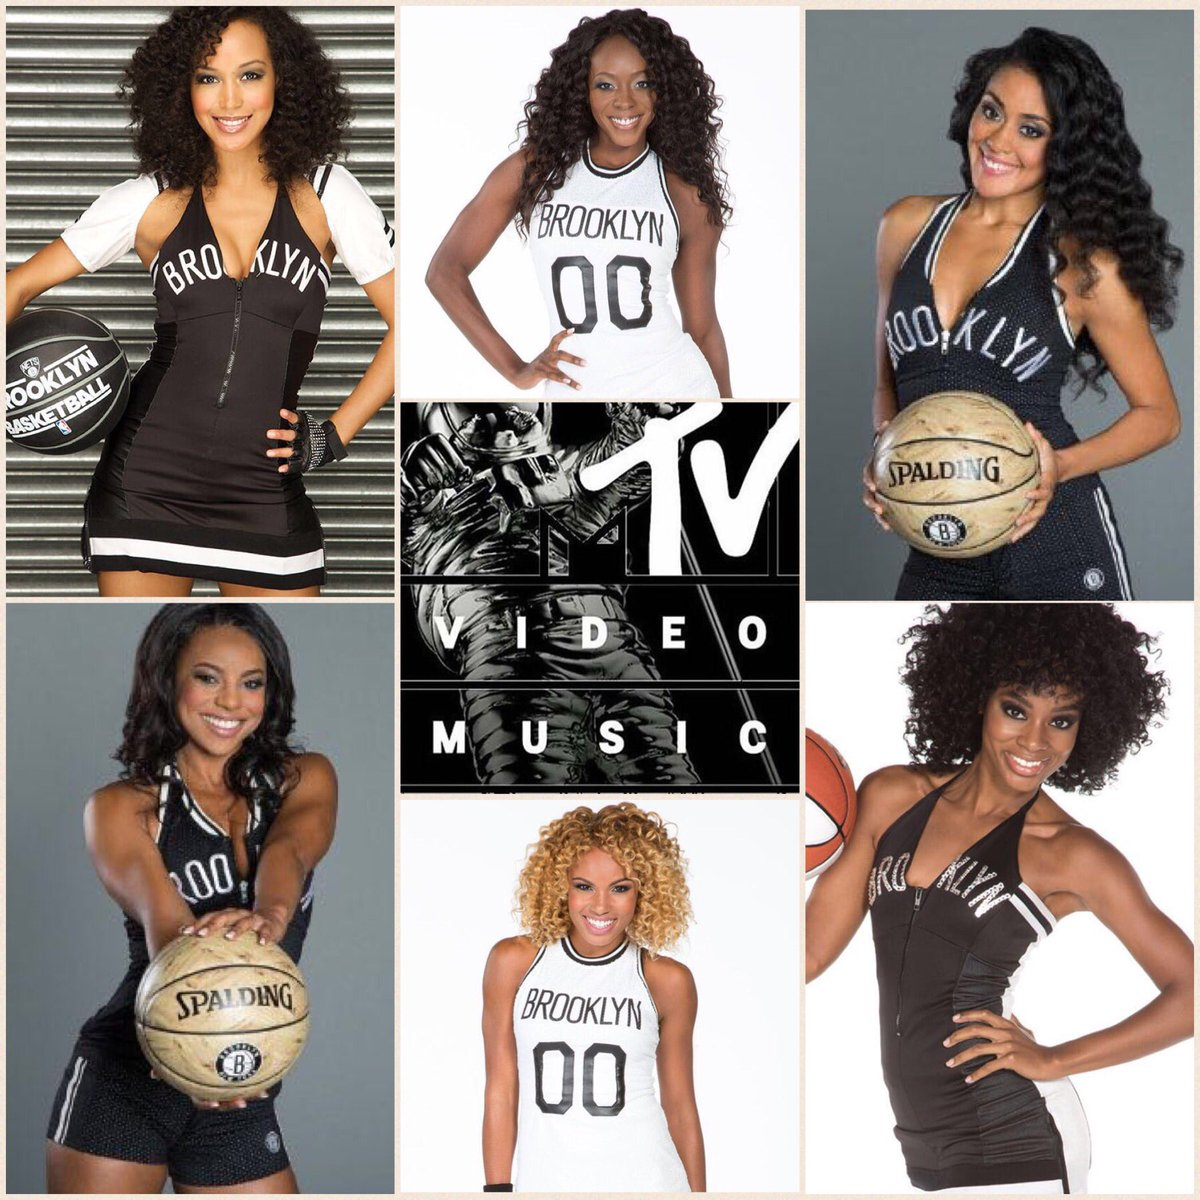 Wishing all our #Brooklynettes, past and present good luck tonight on stage @MTV #VMAs! #BrooklynInTheBuilding ⚪️⚫️ https://t.co/KIj3wbPzK9